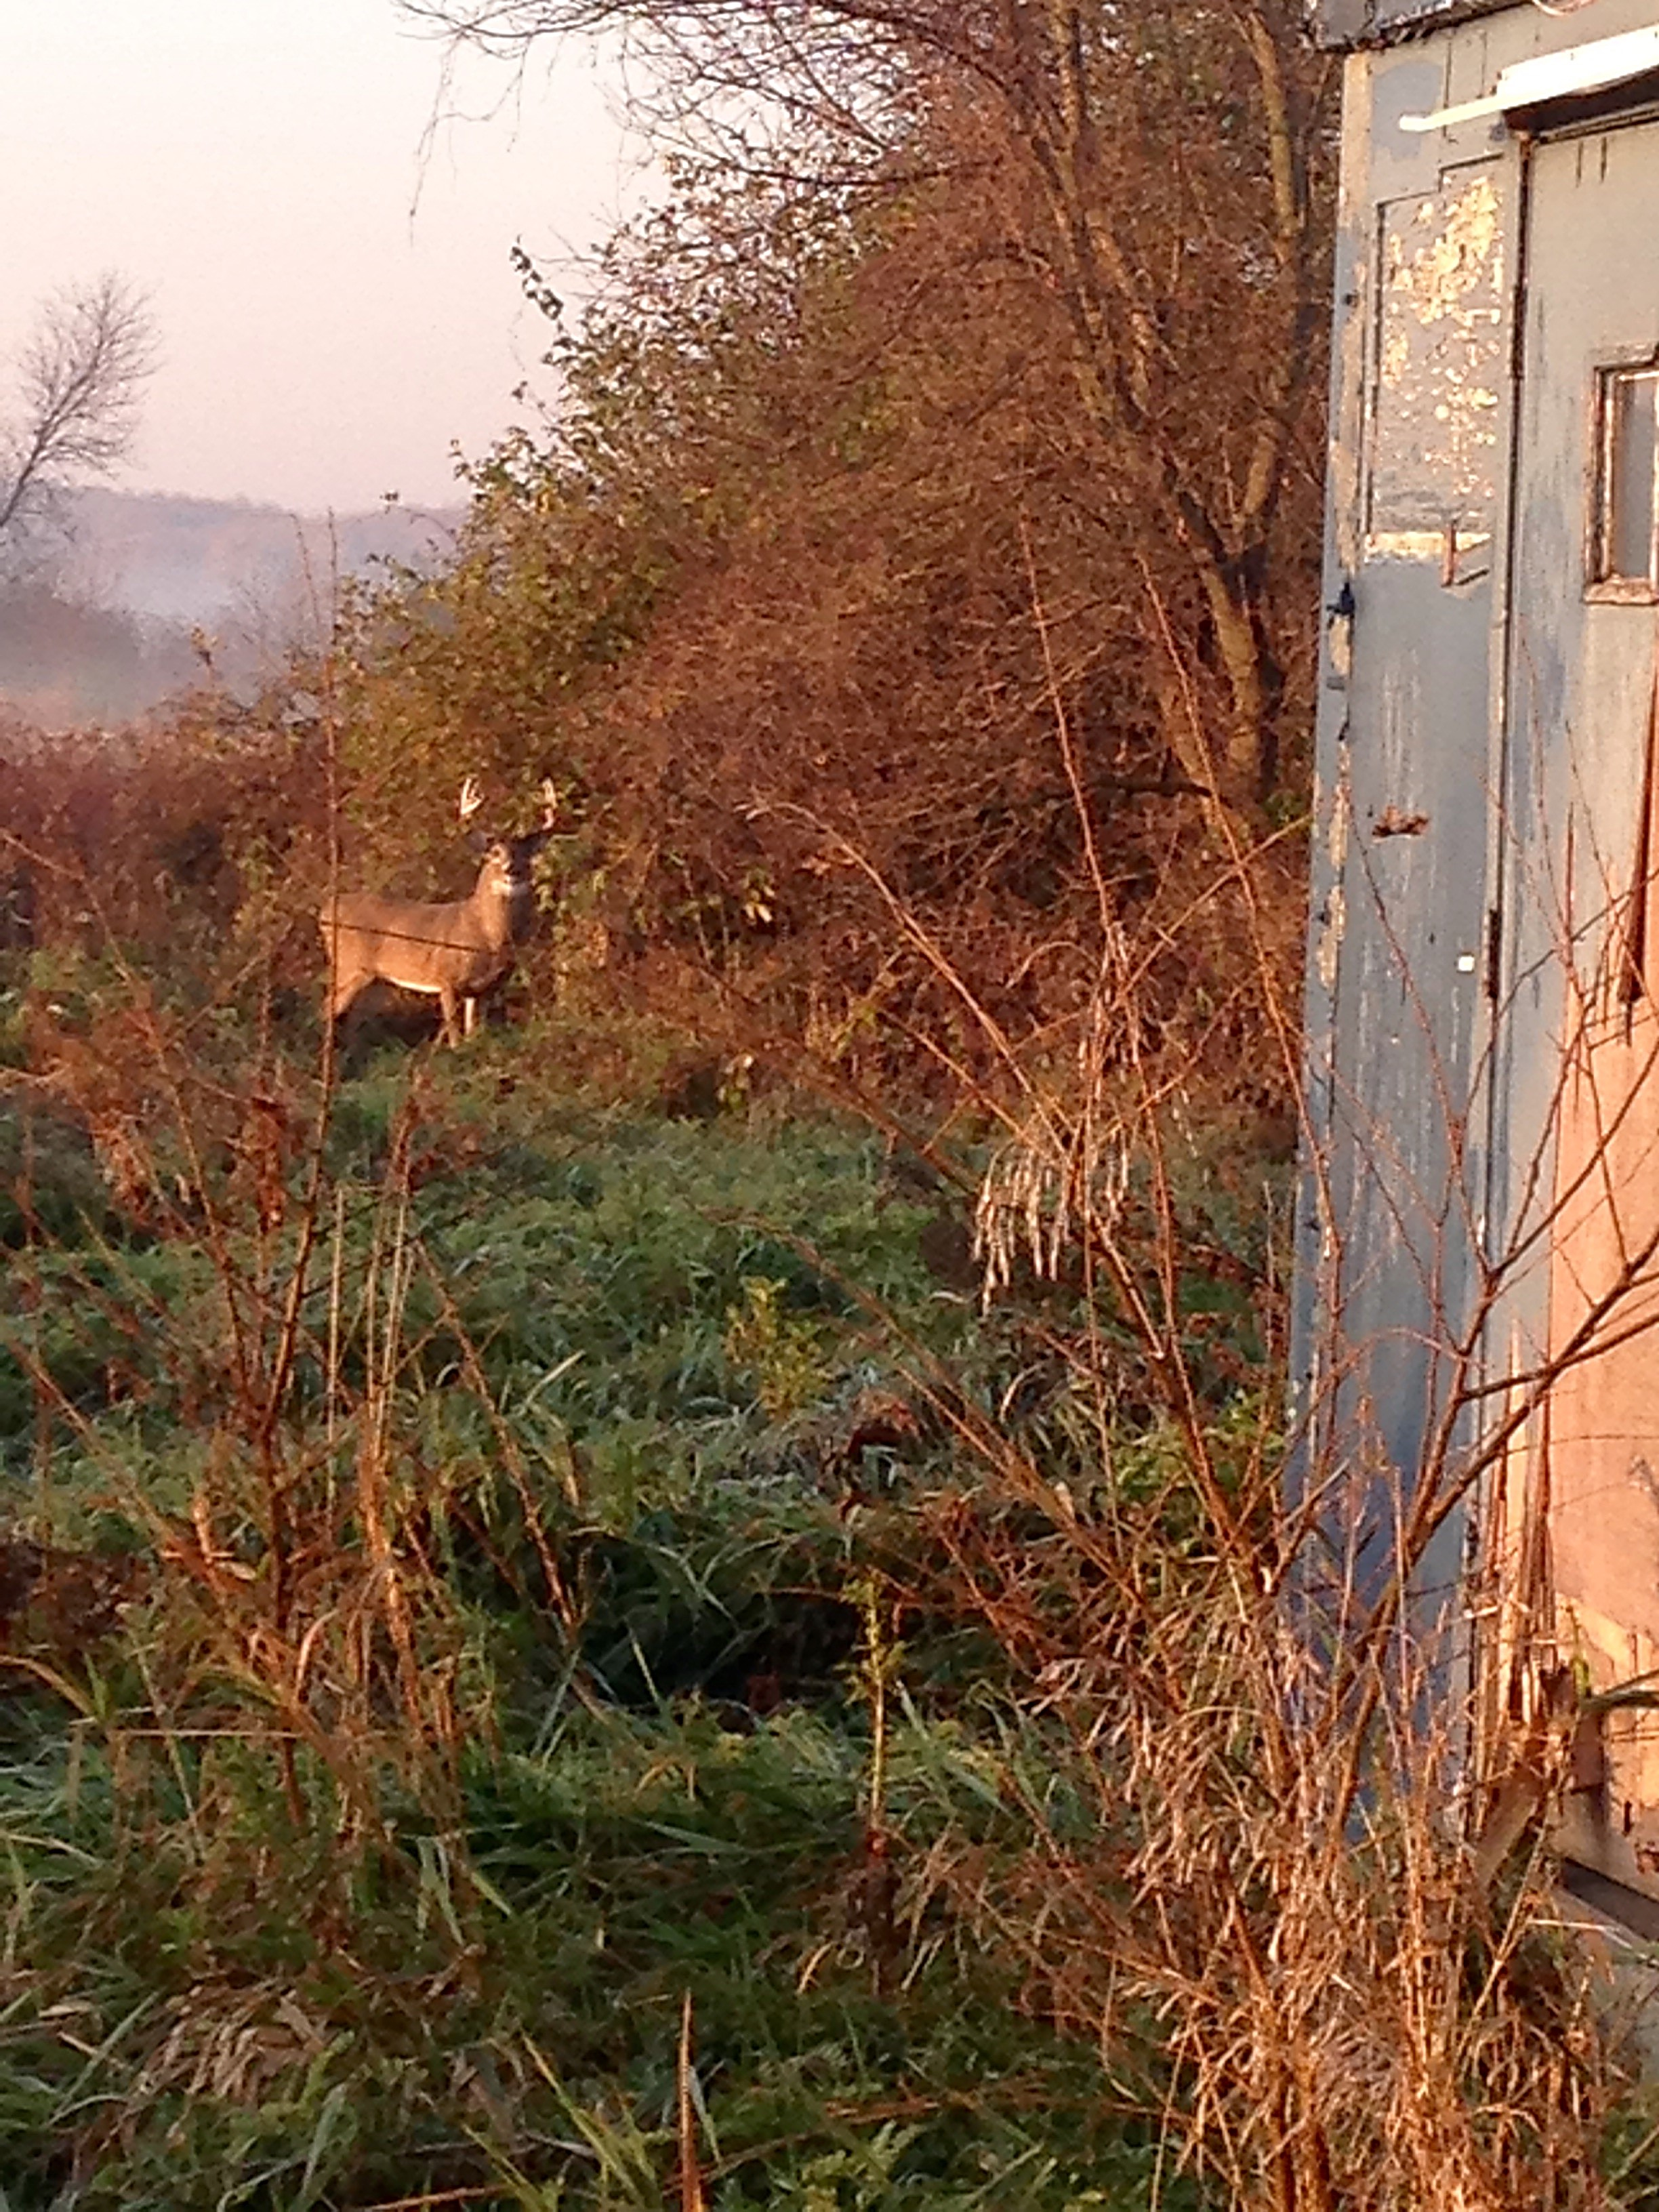 This beautiful 6 point buck greeted Railhead employees the morning of Nov. 15. Photo: Erik Bainbridge